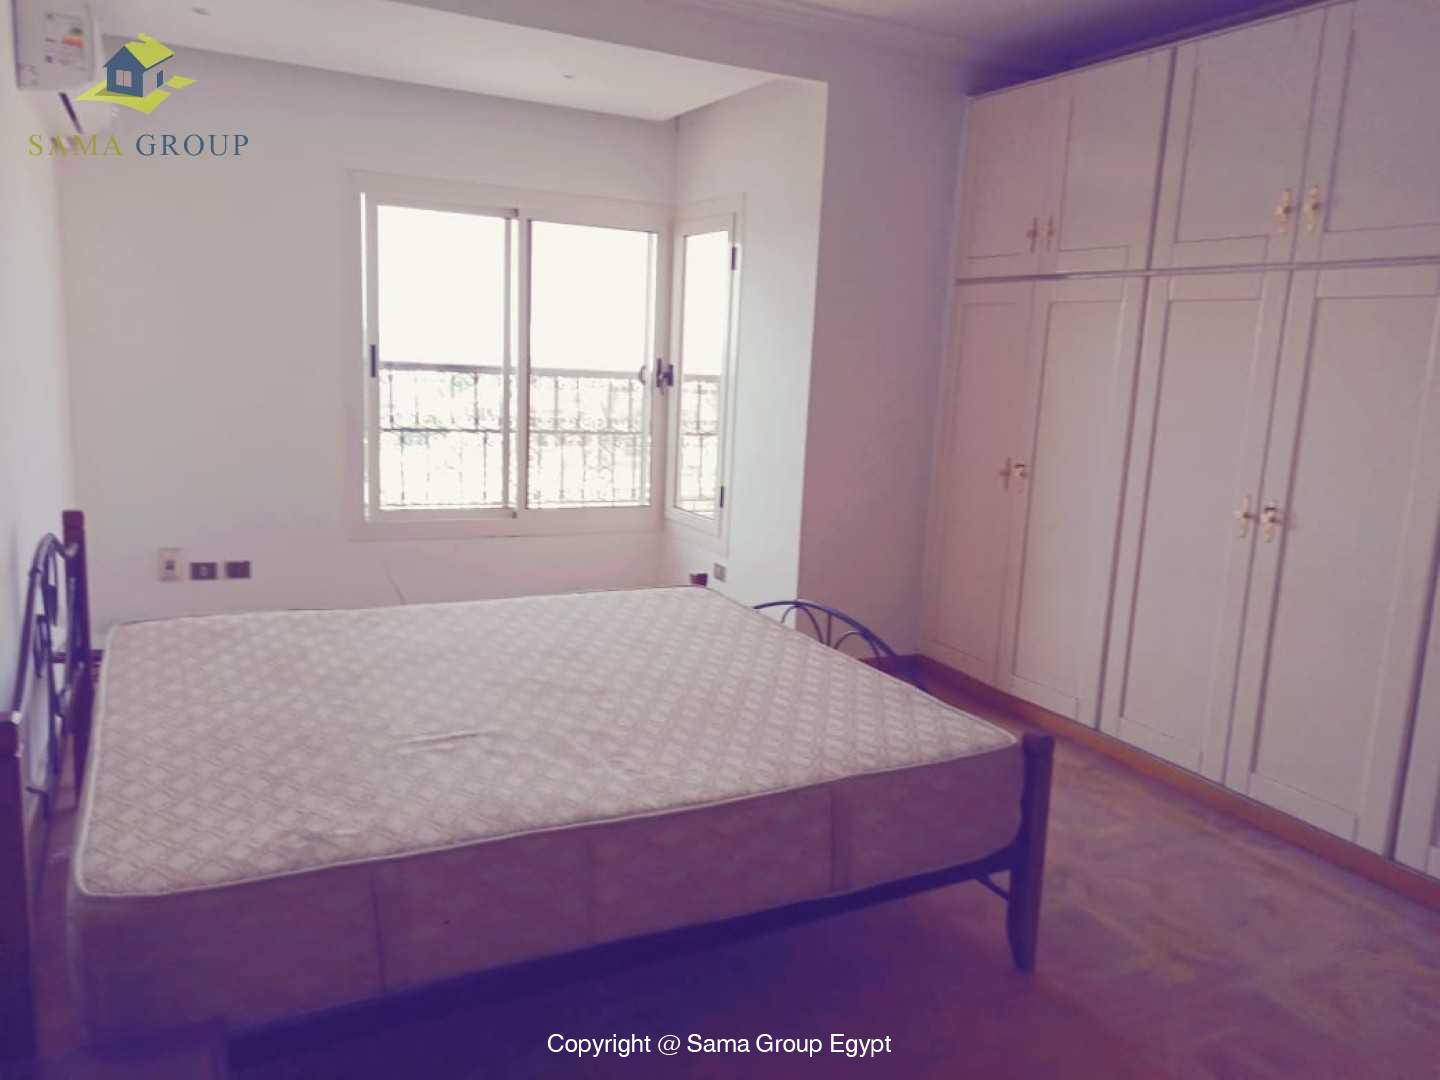 Penthouse With Pool For Rent In Maadi Degla,Semi furnished,Penthouse NO #18